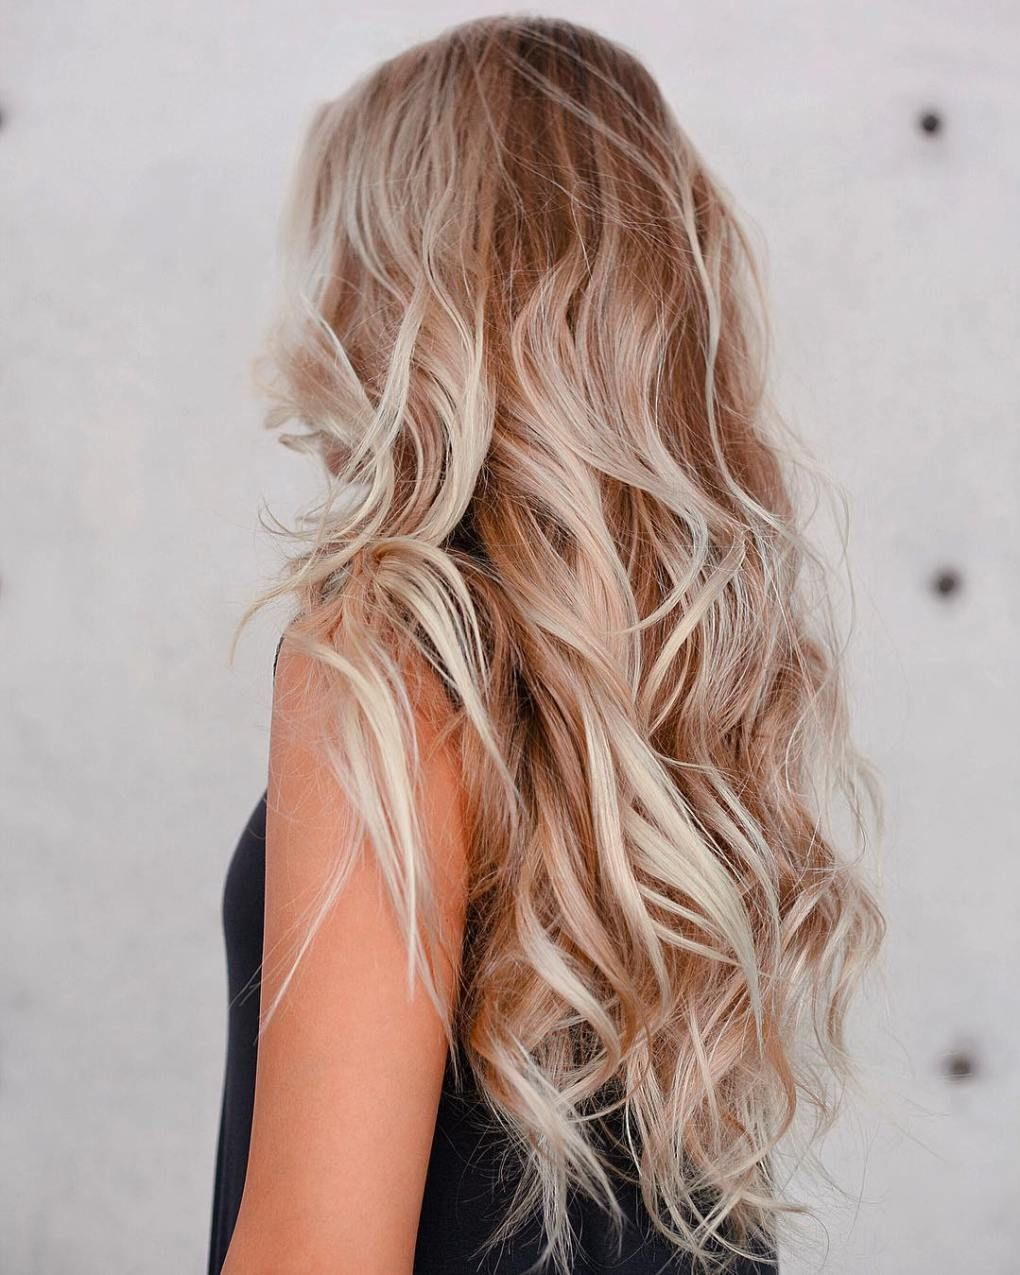 Beach Hairstyles Brilliant 20 Perfect Ways To Get Beach Waves In Your Hair  Beach Waves Beach